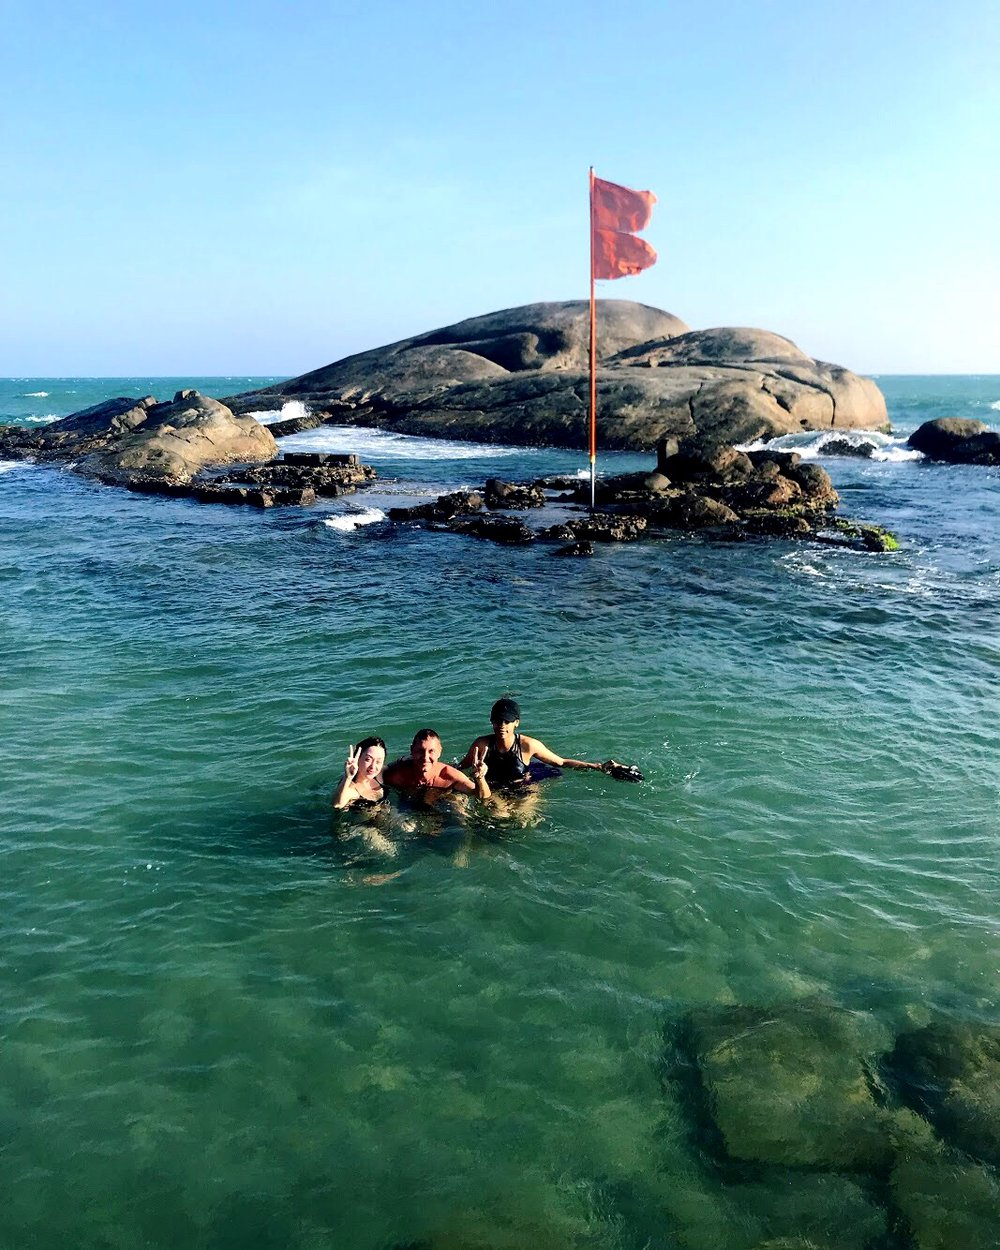 Three bodies of water converge at Kanyakumari, and local lore has it that you can wash away your sins by swimming here